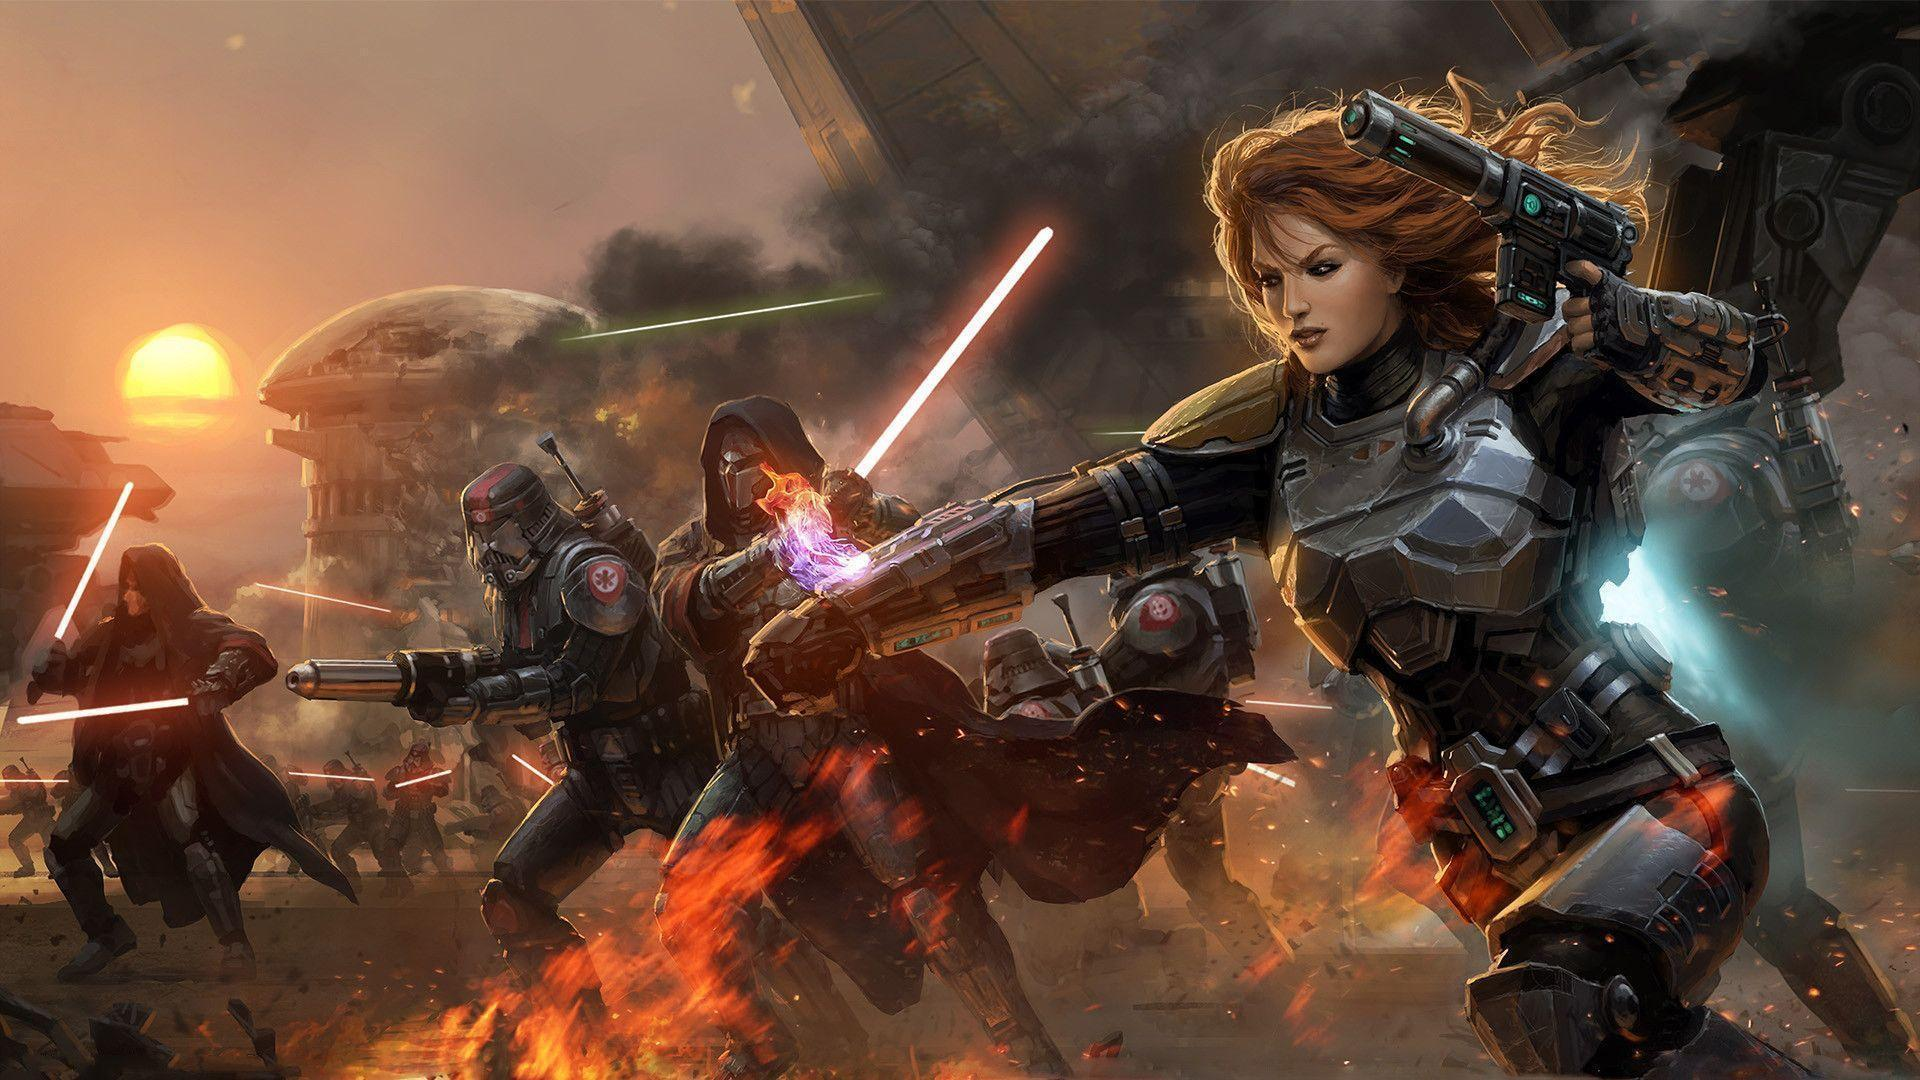 Star Wars The Old Republic SWTOR Star Wars Wallpapers 1920x1080